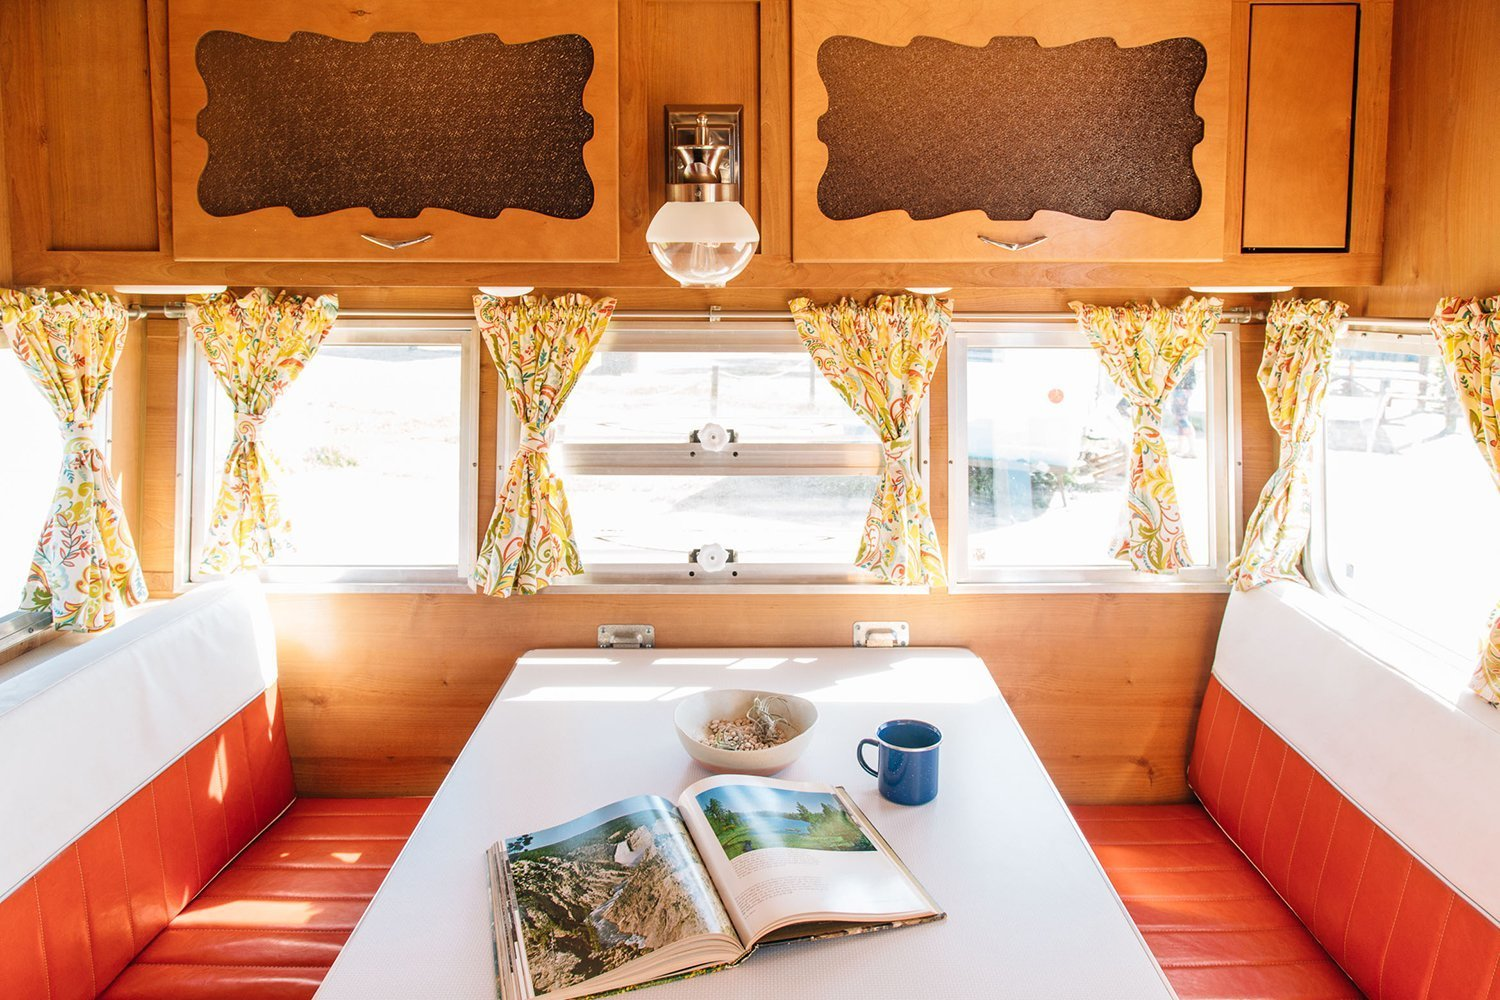 Dining Room, Table, Bench, and Wall Lighting A retro Shasta trailer in Southern California's scenic San Clemente State Beach.  Photo 8 of 11 in 10 Cool Trailers and Campervans You Can Rent For Your Next Adventure